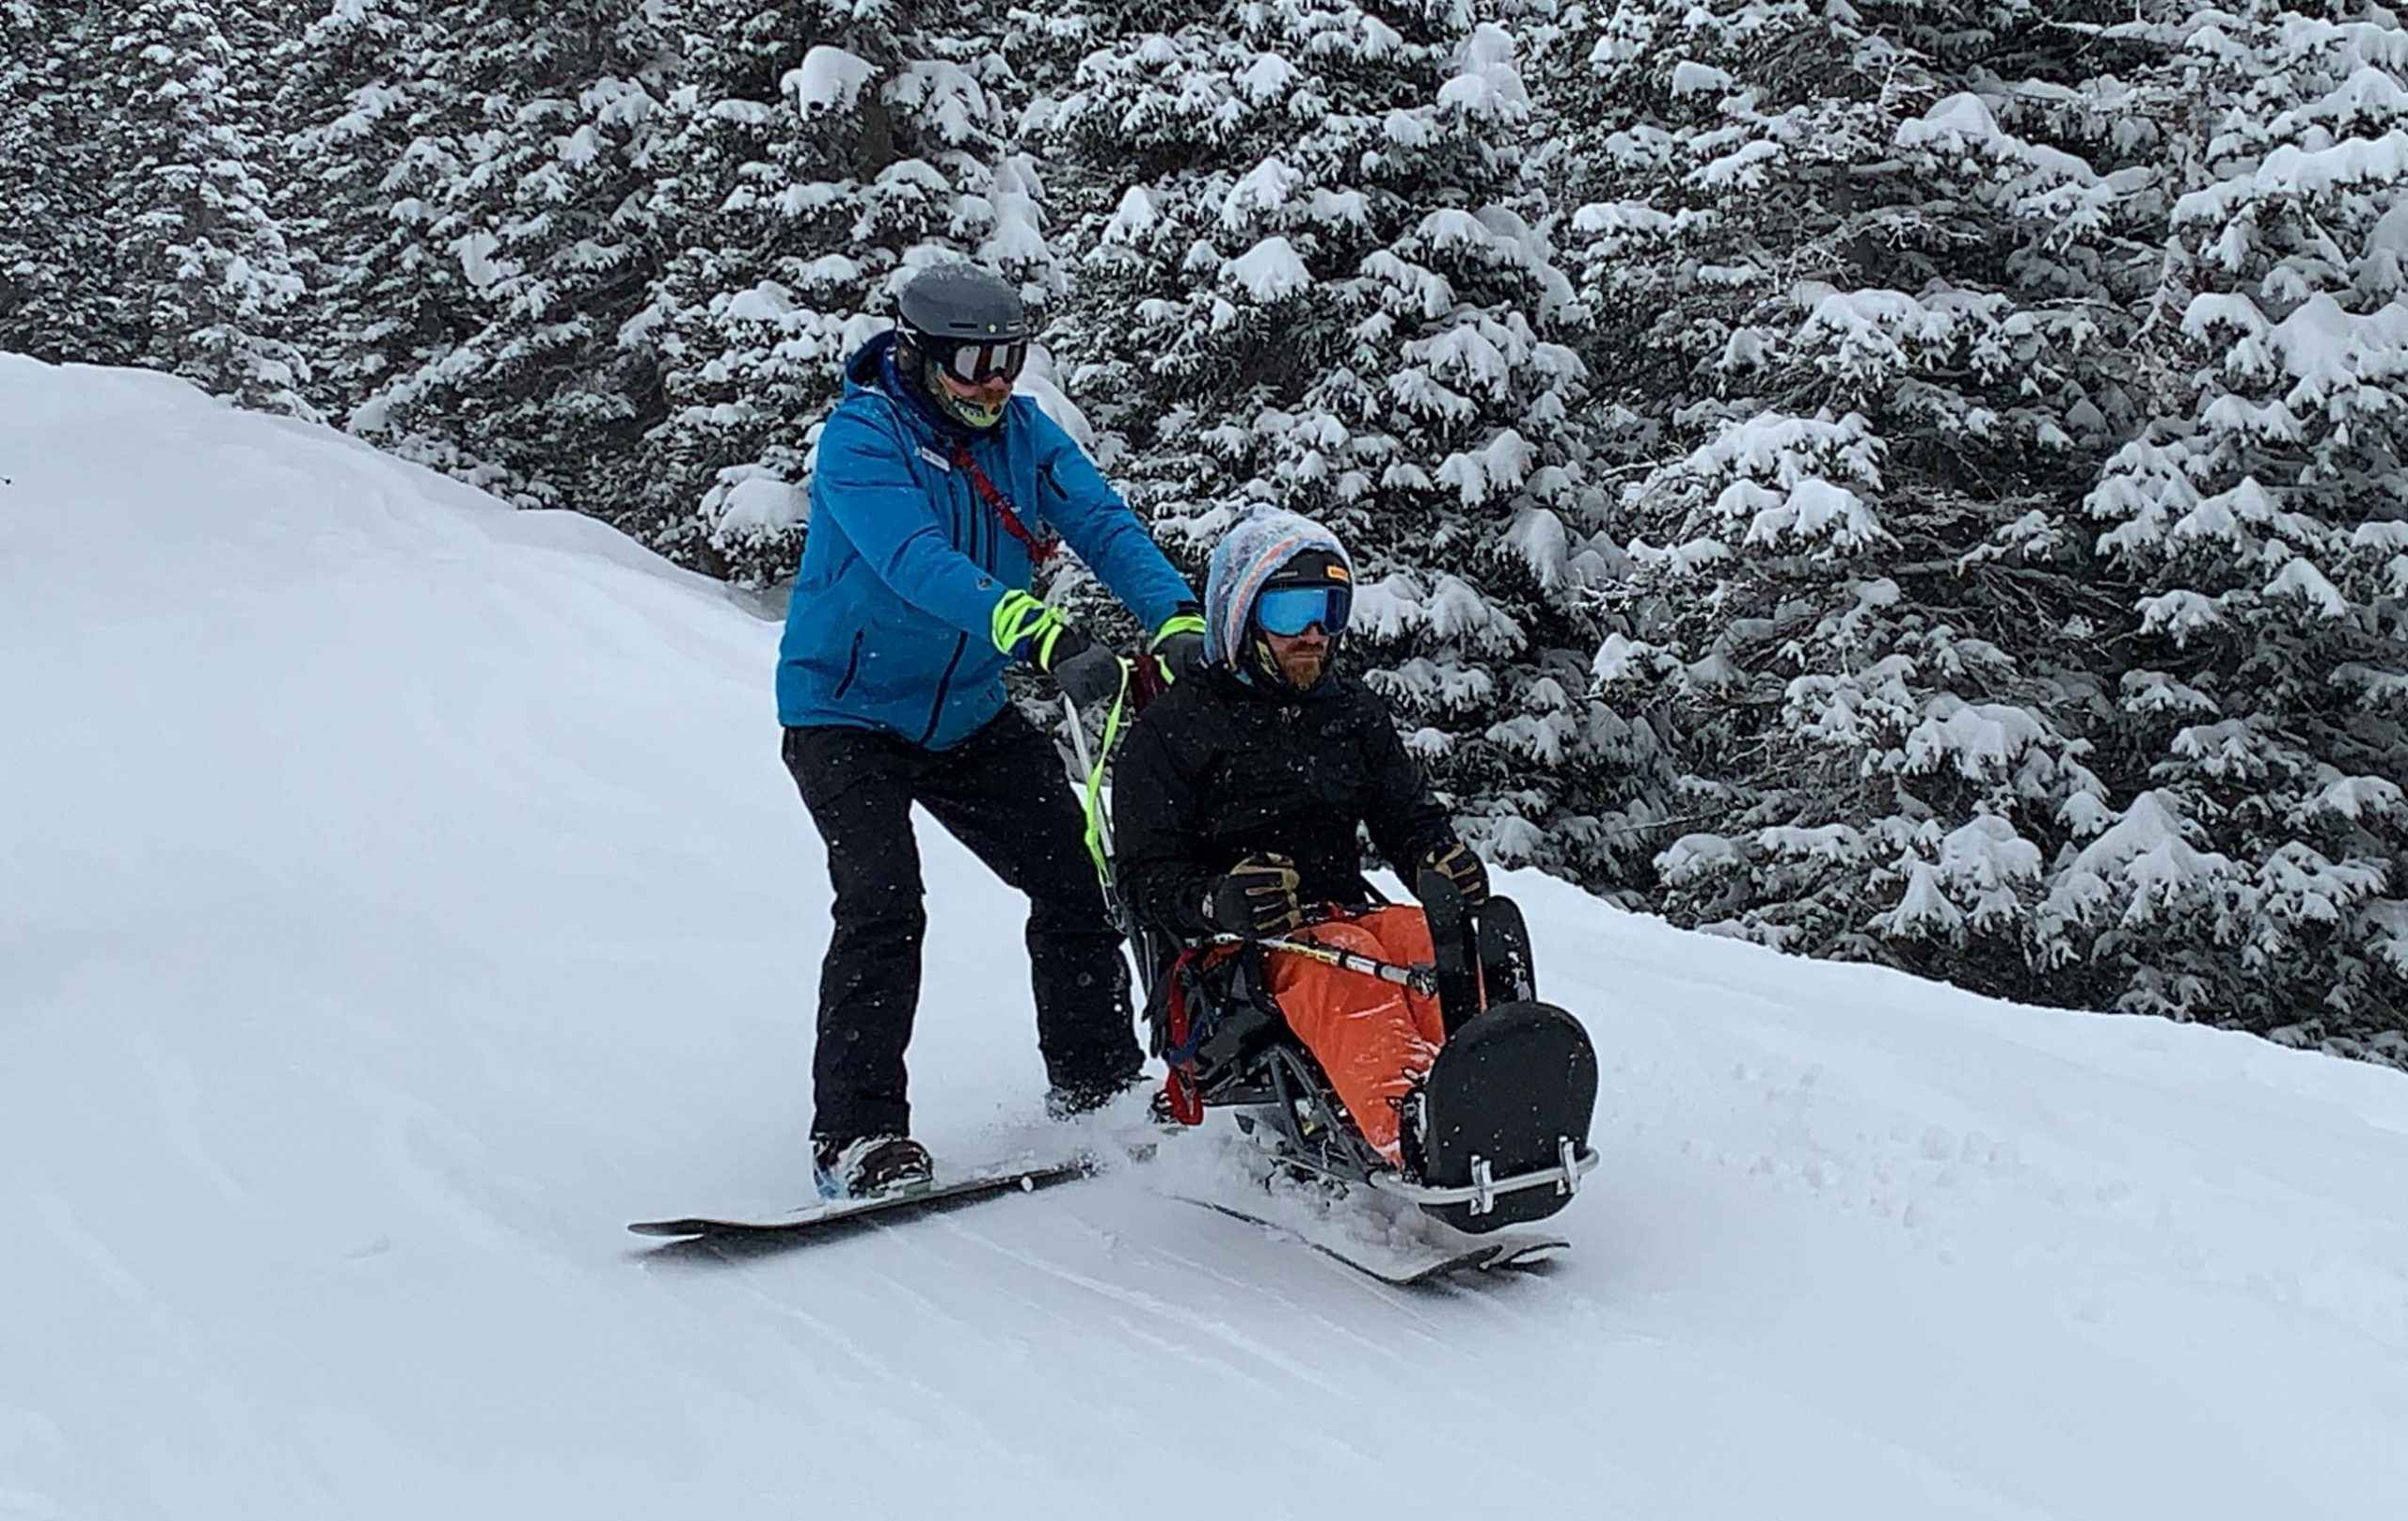 PSIA-AASI member Trevor Hildebrand at his Adaptive Snowboard Level III exam